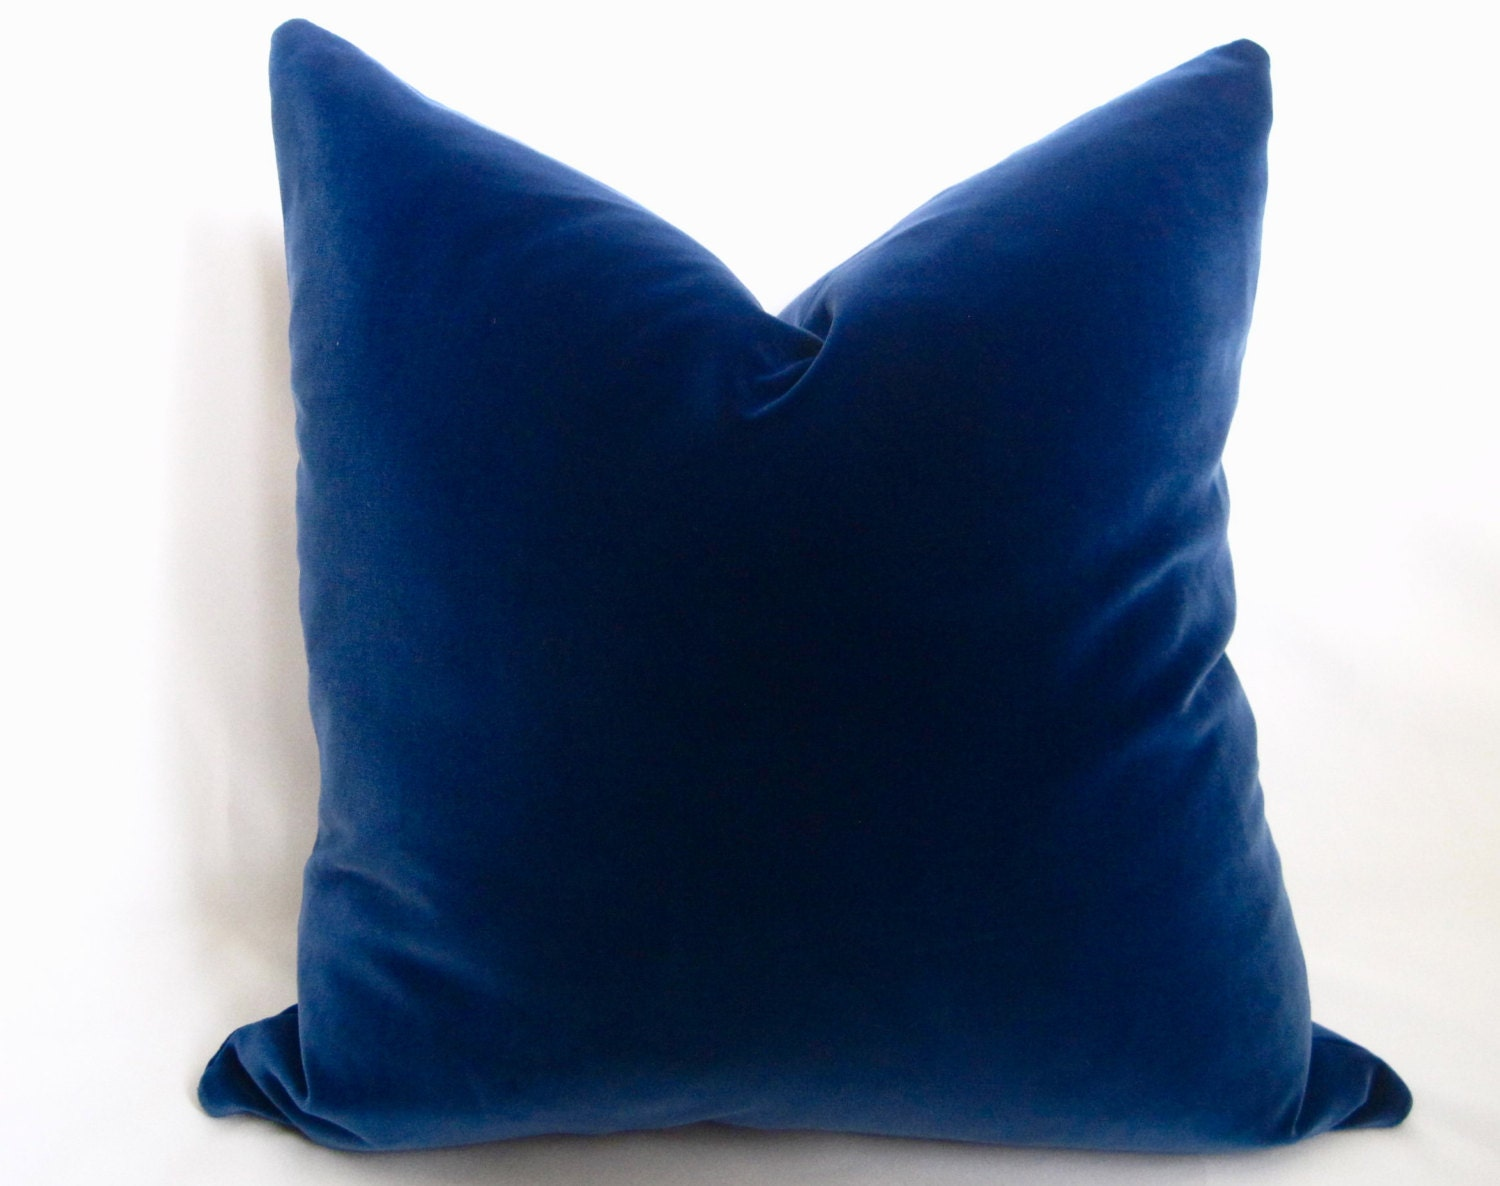 Blue Velvet Throw Pillows : Belgium Cotton Velvet Pillow Cover Blue more by WillaSkyeHome